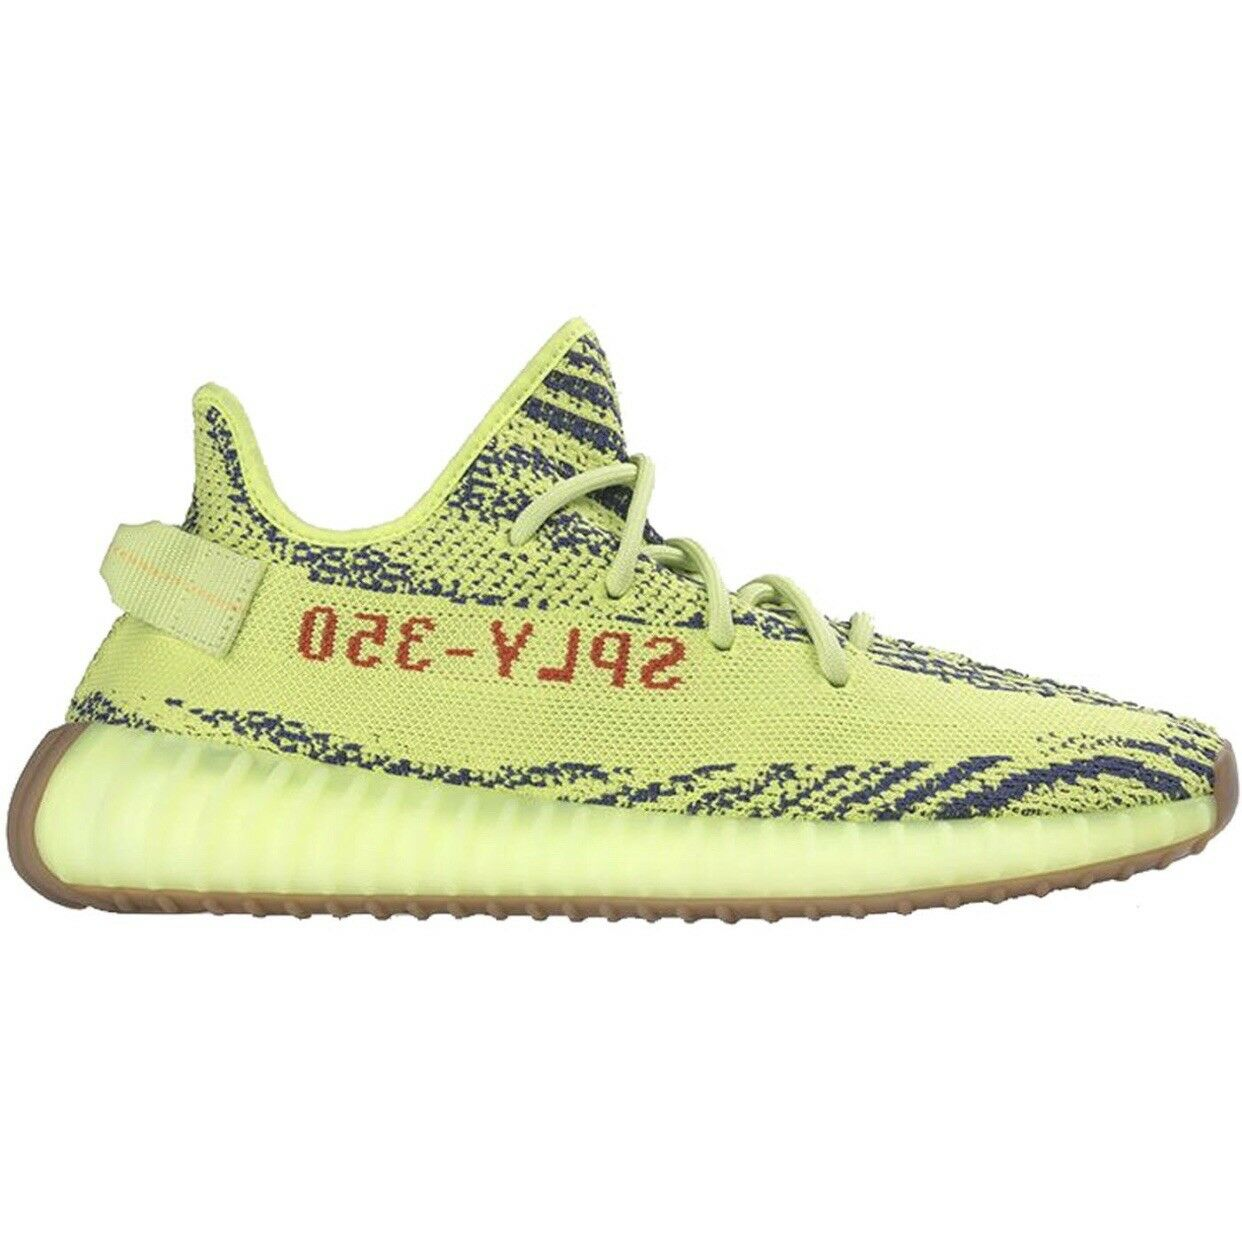 Adidas Yeezy Boost 350 V2 Semi-Frozen Yellow Size 10.5 Authentic